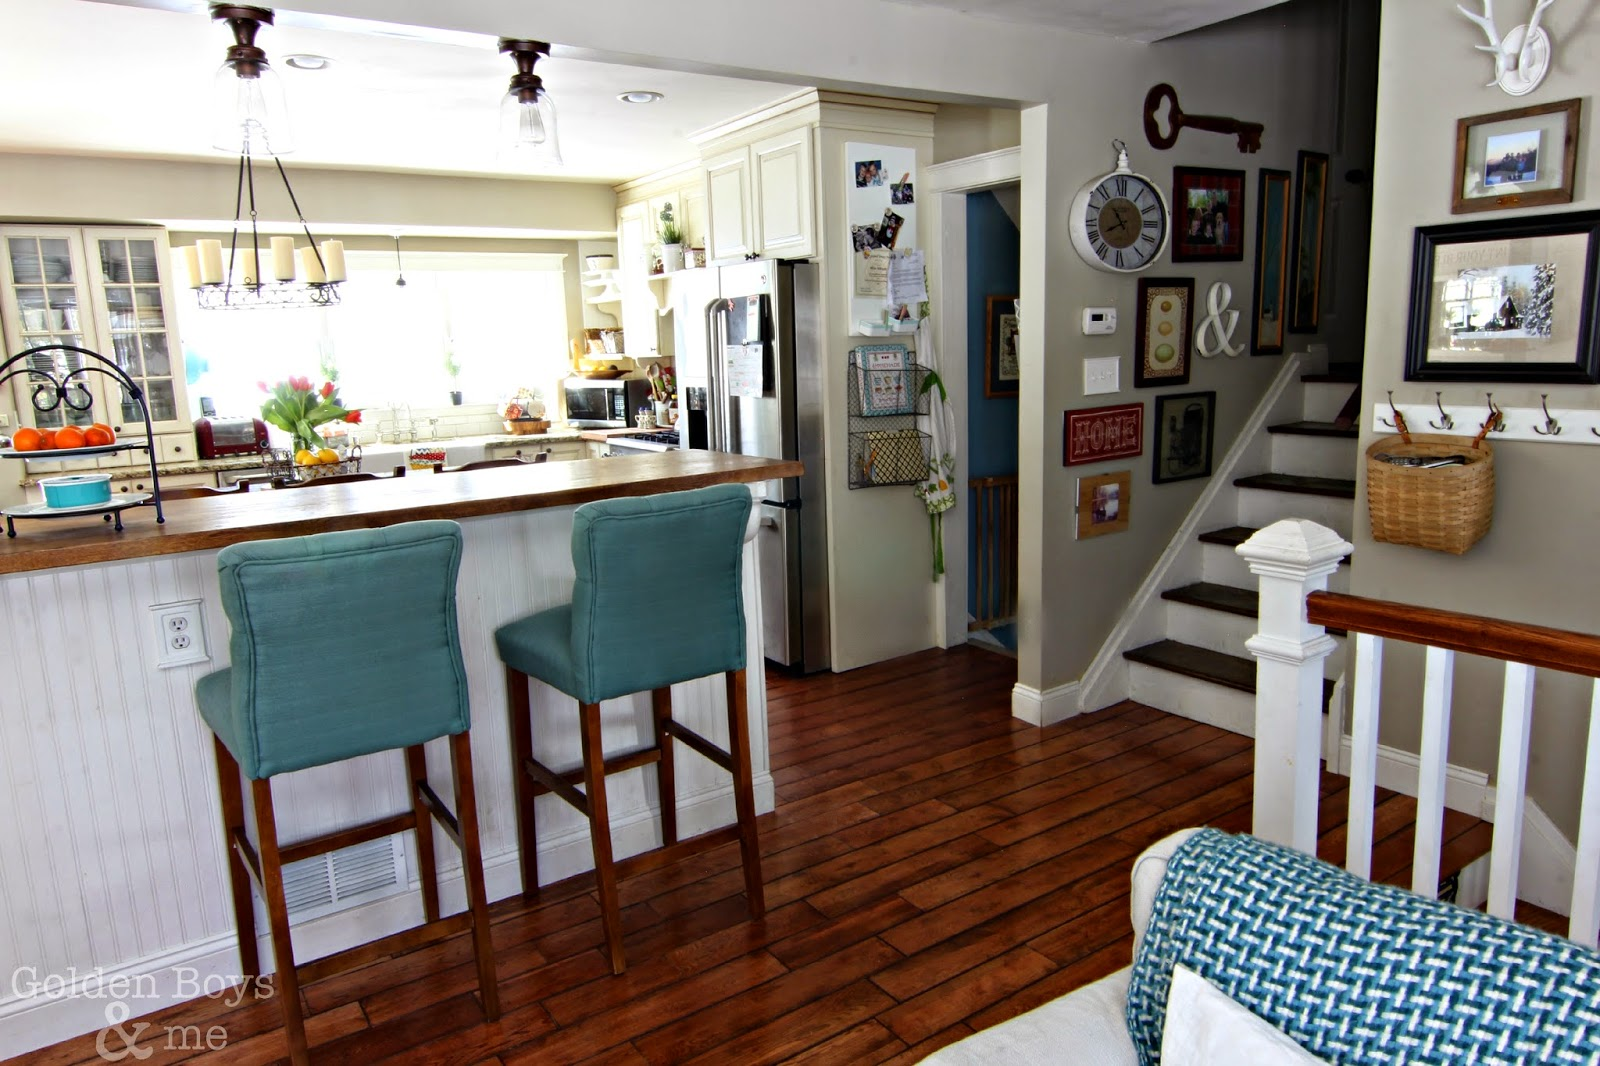 Open floor plan split level home with gallery wall going up the stairs-www.goldenboysandme.com